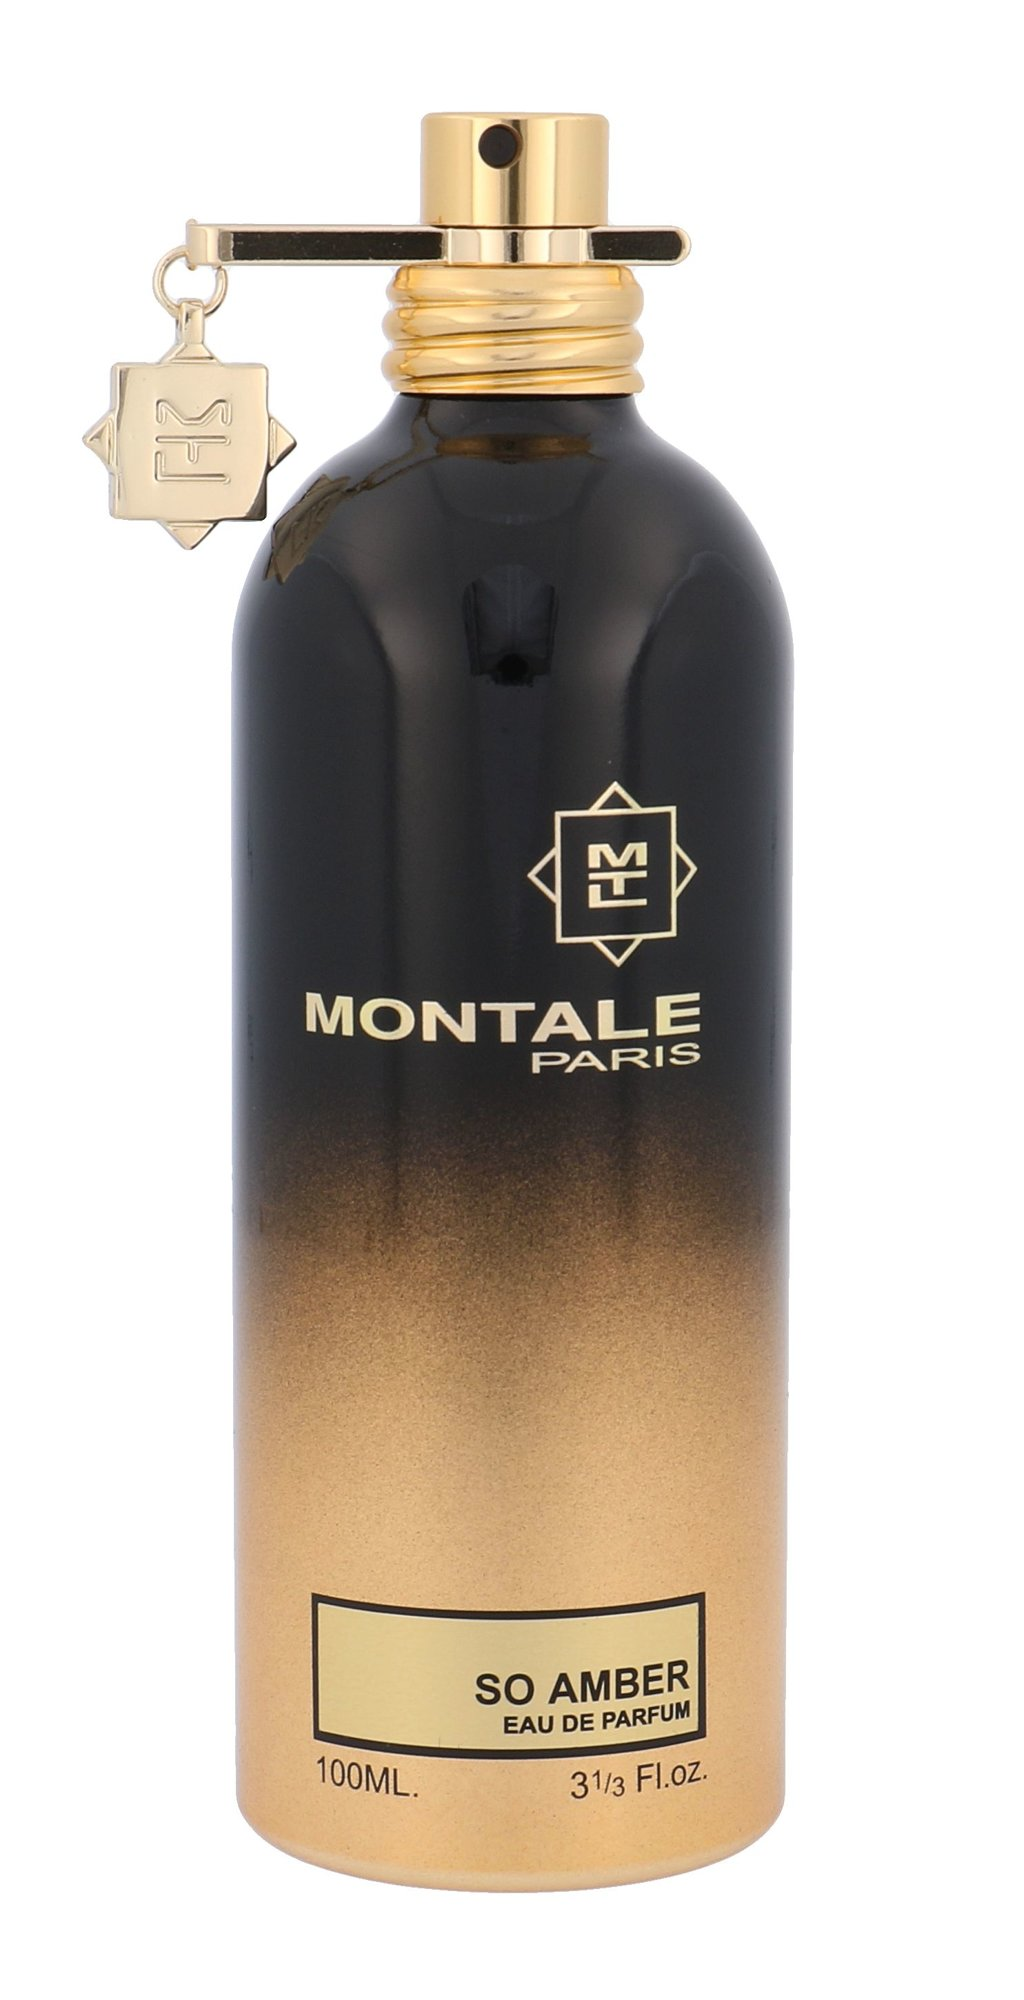 Montale Paris So Amber EDP 100ml